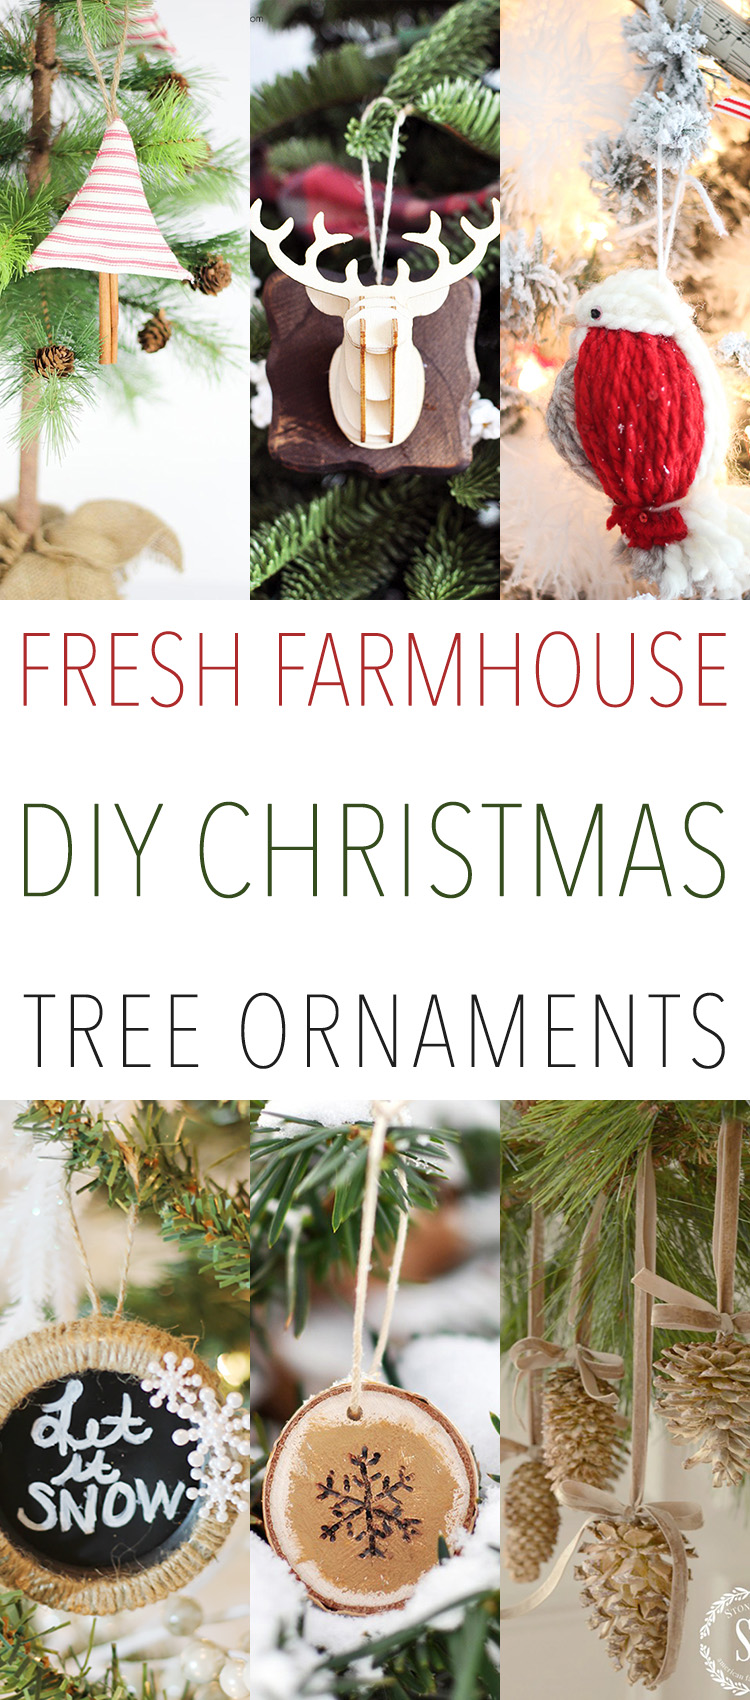 FarmhouseChristmasOrnament-TOWER-0001